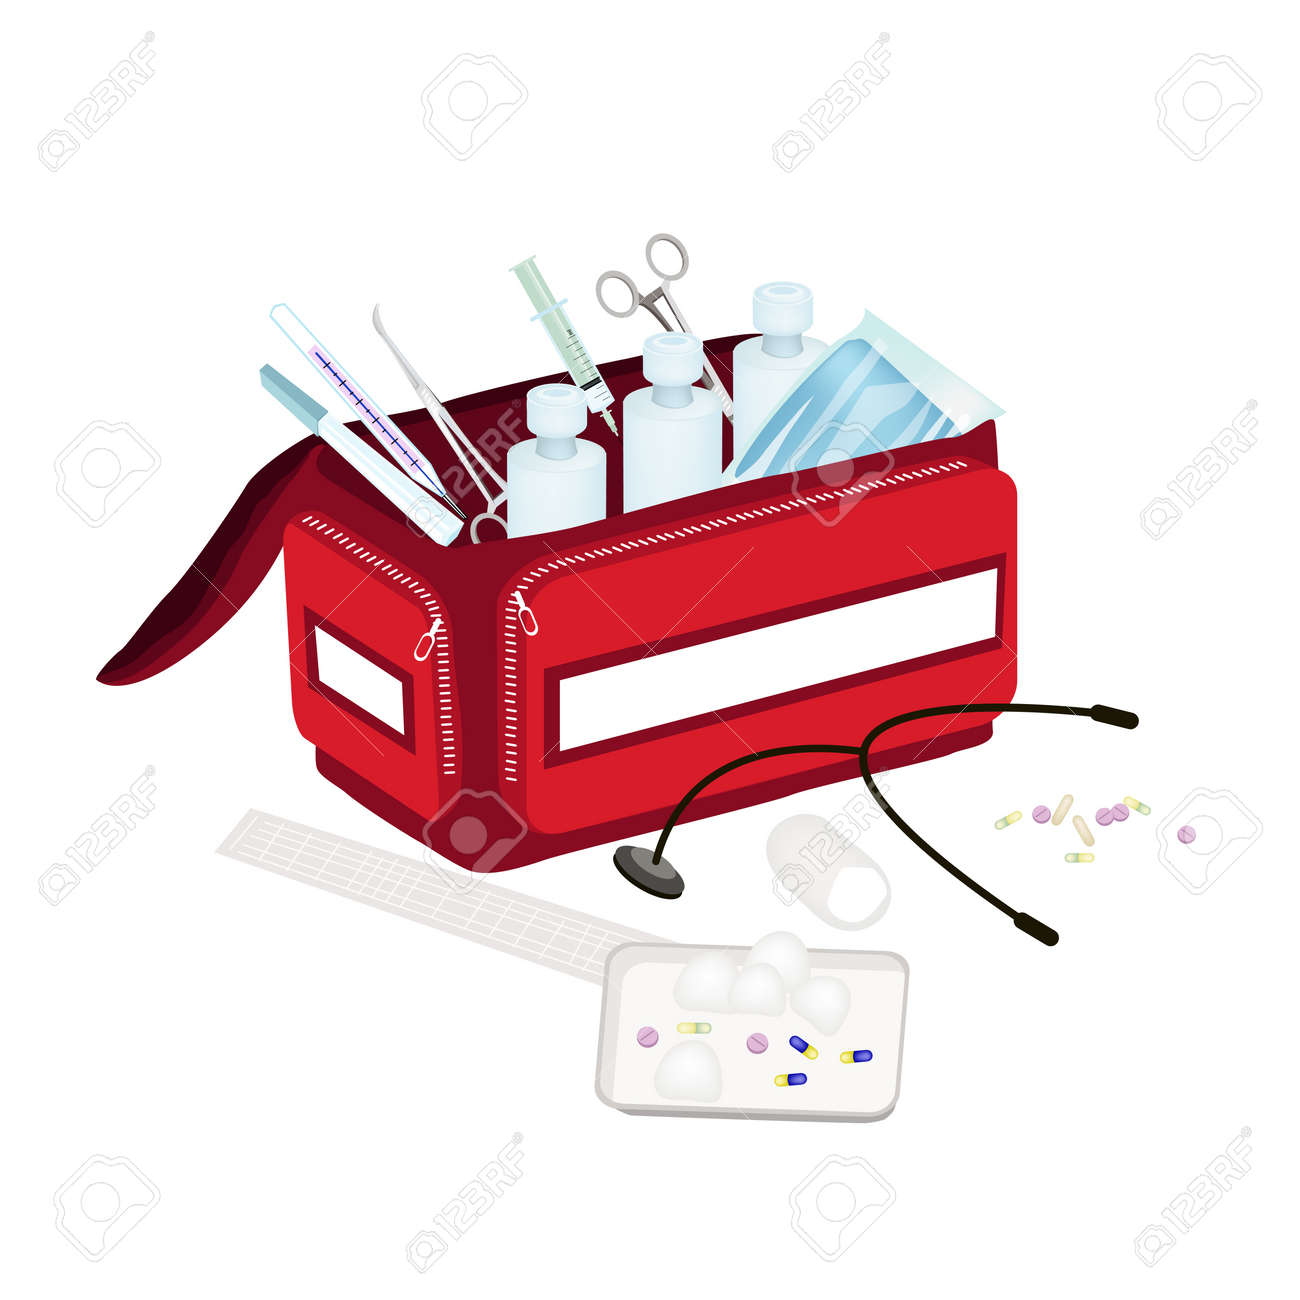 Medical Concept, Illustration of Open First Aid Box Filled with